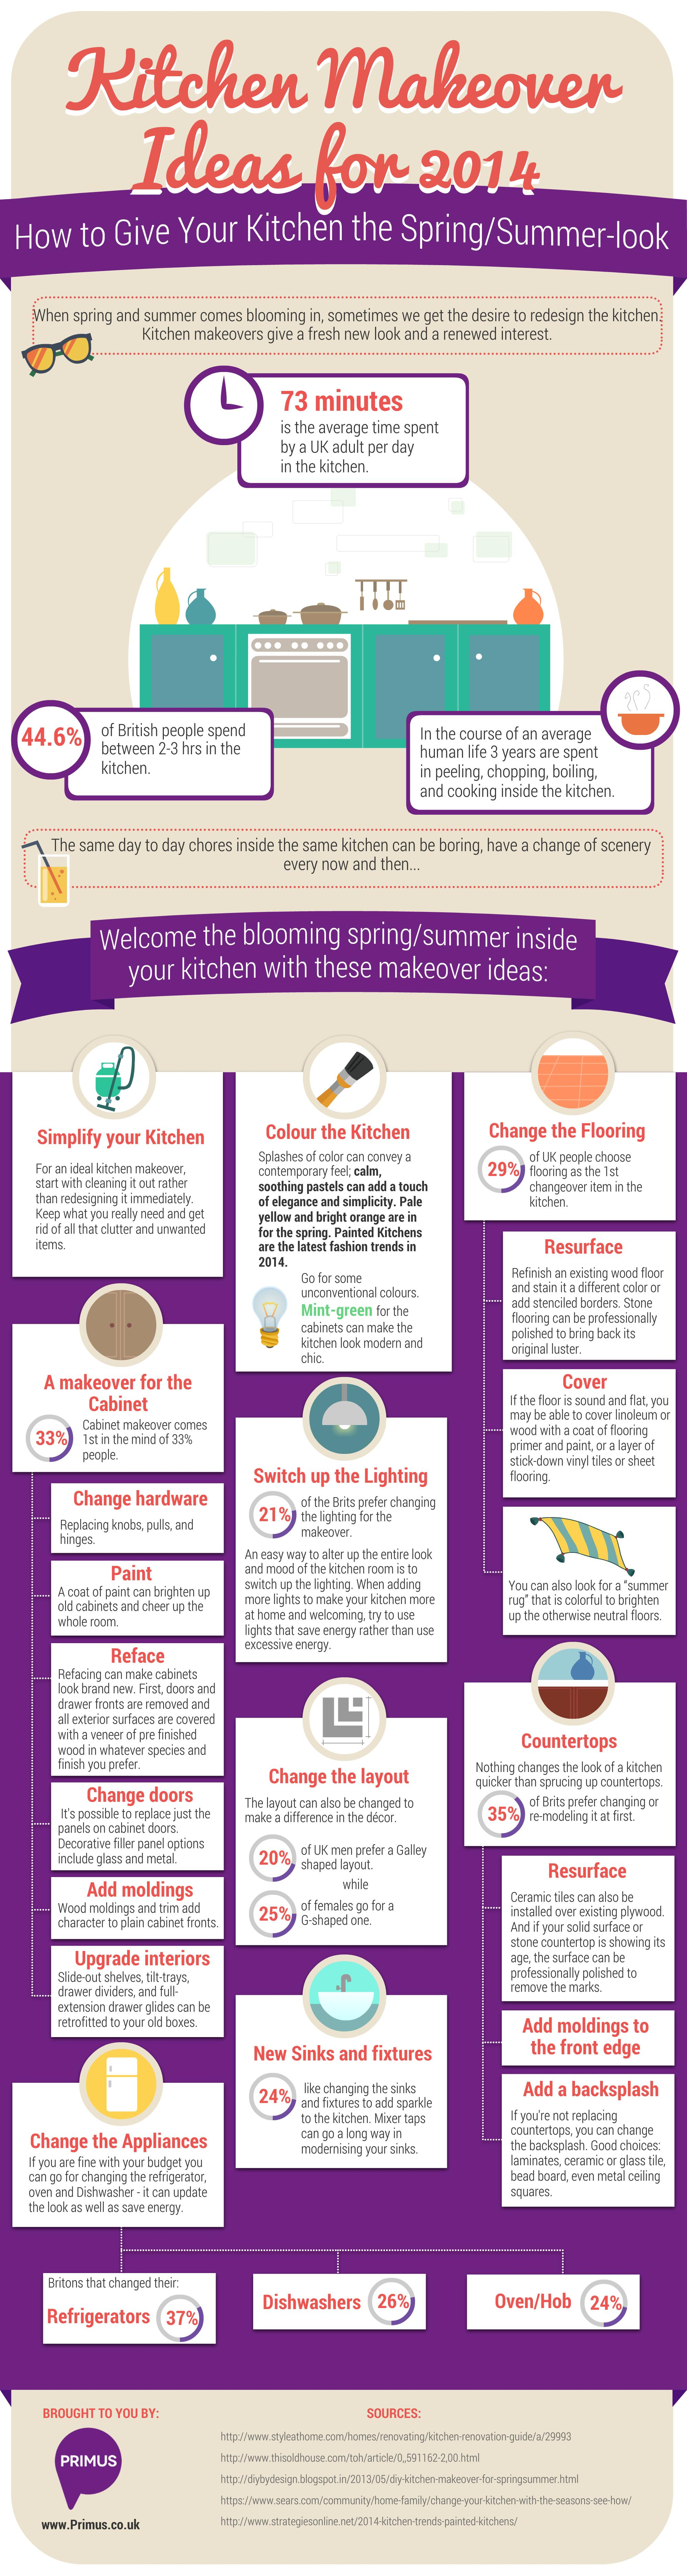 Kitchen Makeover Ideas for 2014 {infographic]